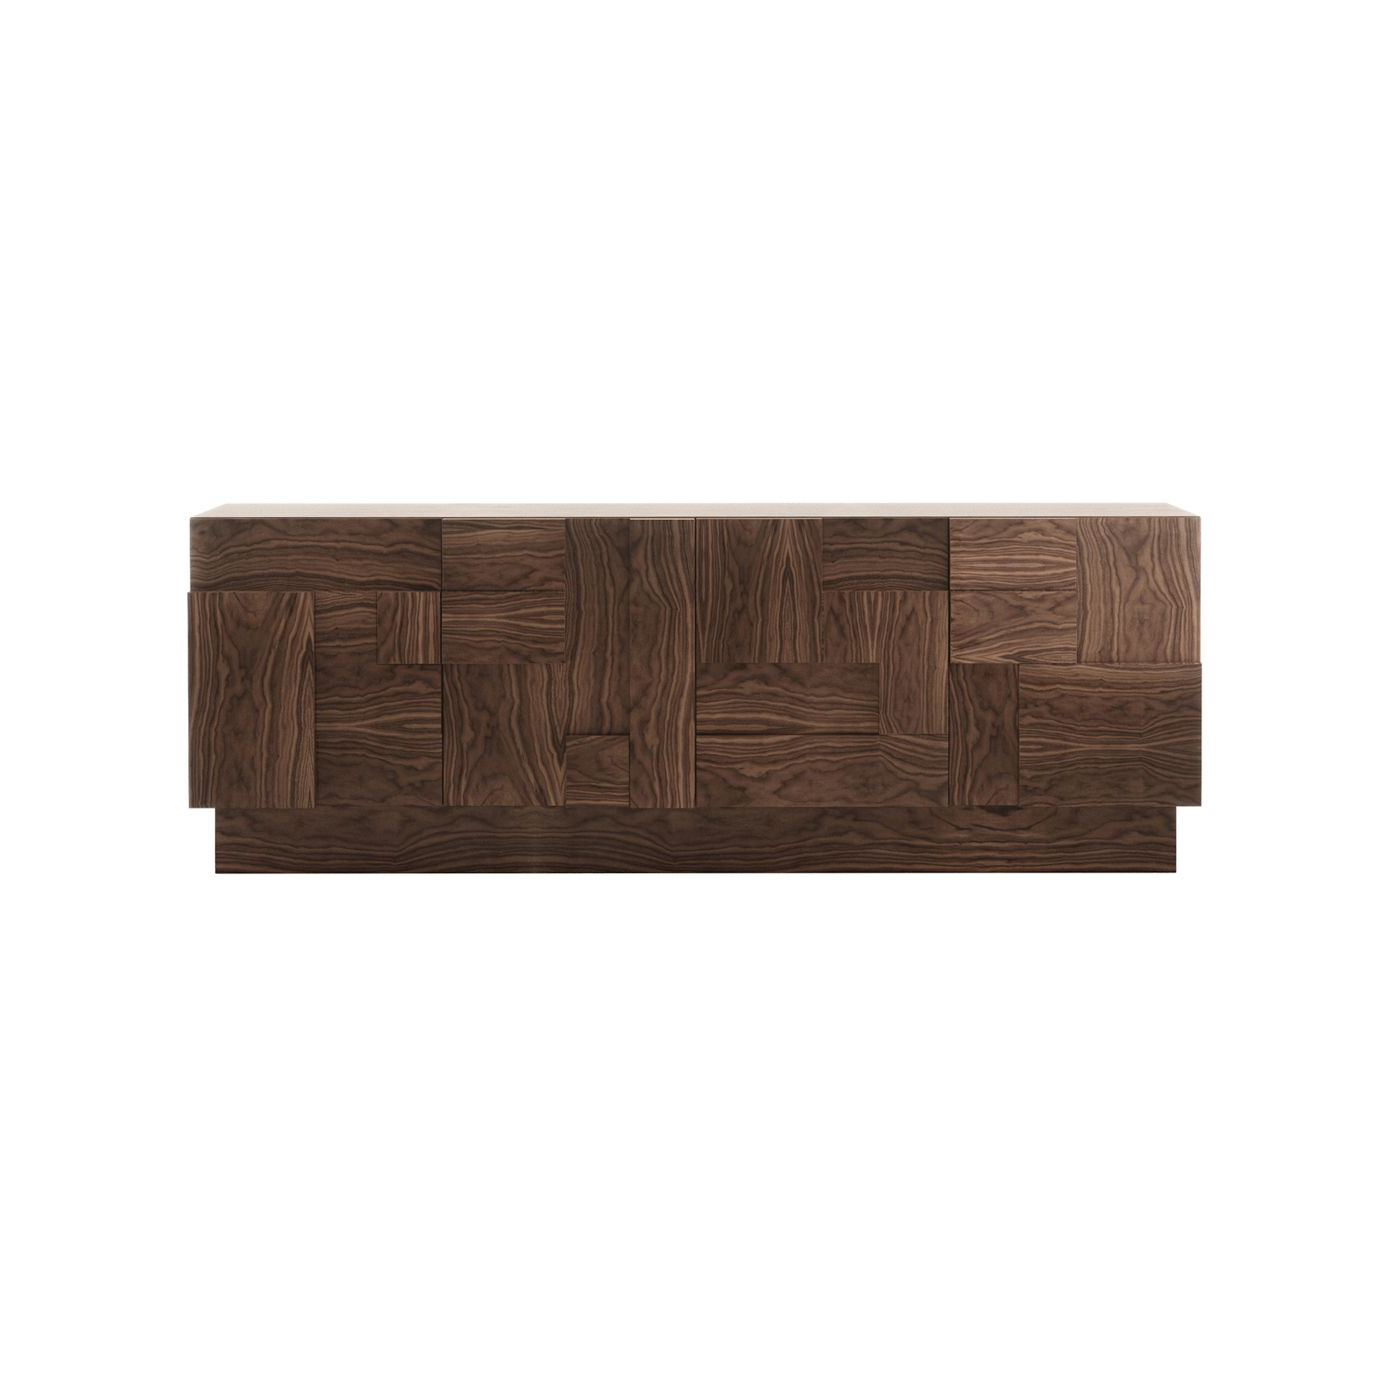 Decorar A Vida This Stunning Wooden Sideboard Has Four Intended For Ironwood 4 Door Sideboards (View 7 of 20)